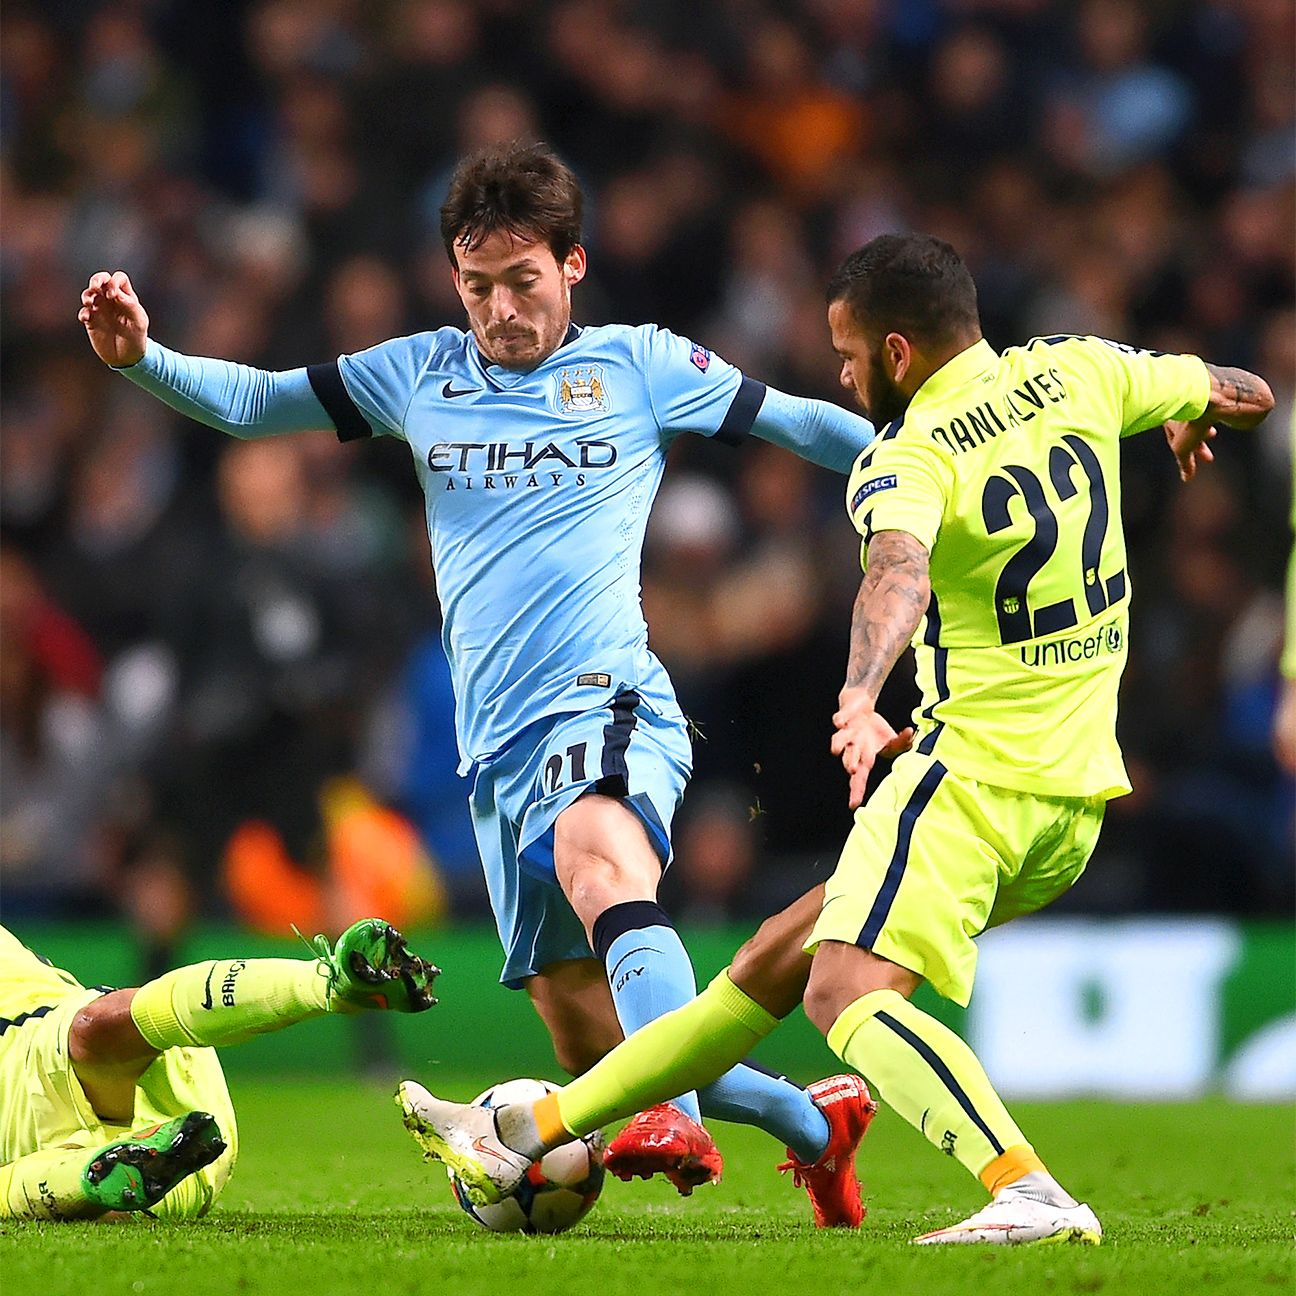 David Silva produced a slick backheel to set up City's lone goal.